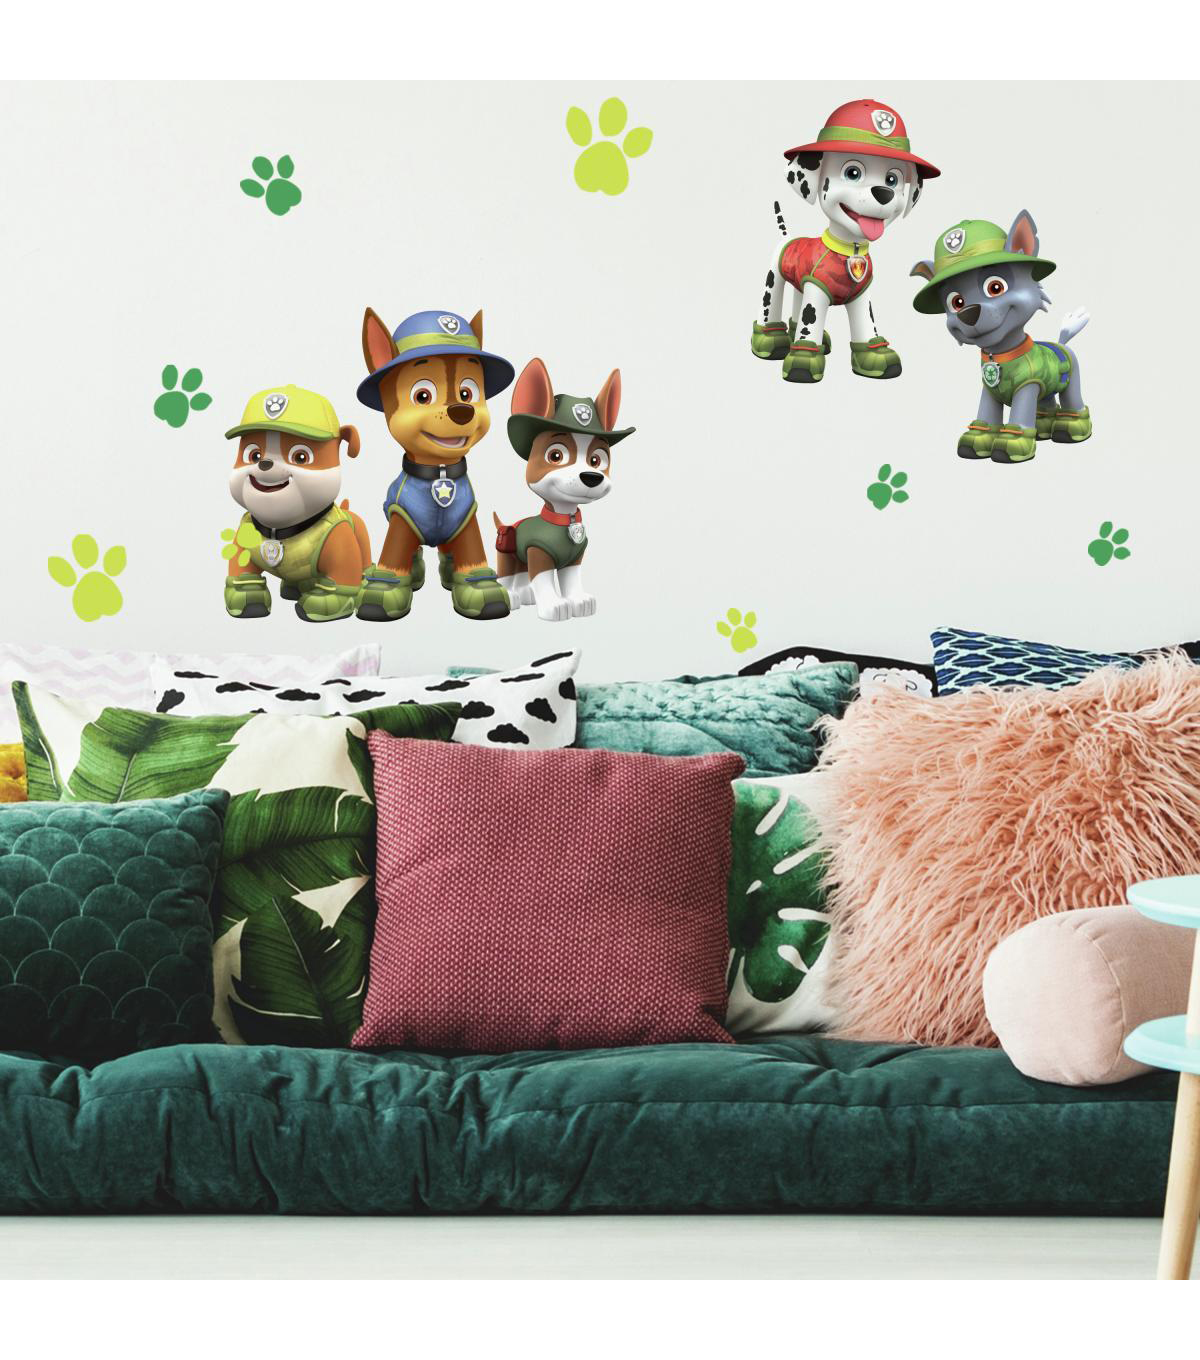 York Wallcoverings Wall Decals-Paw Patrol Jungle Giant